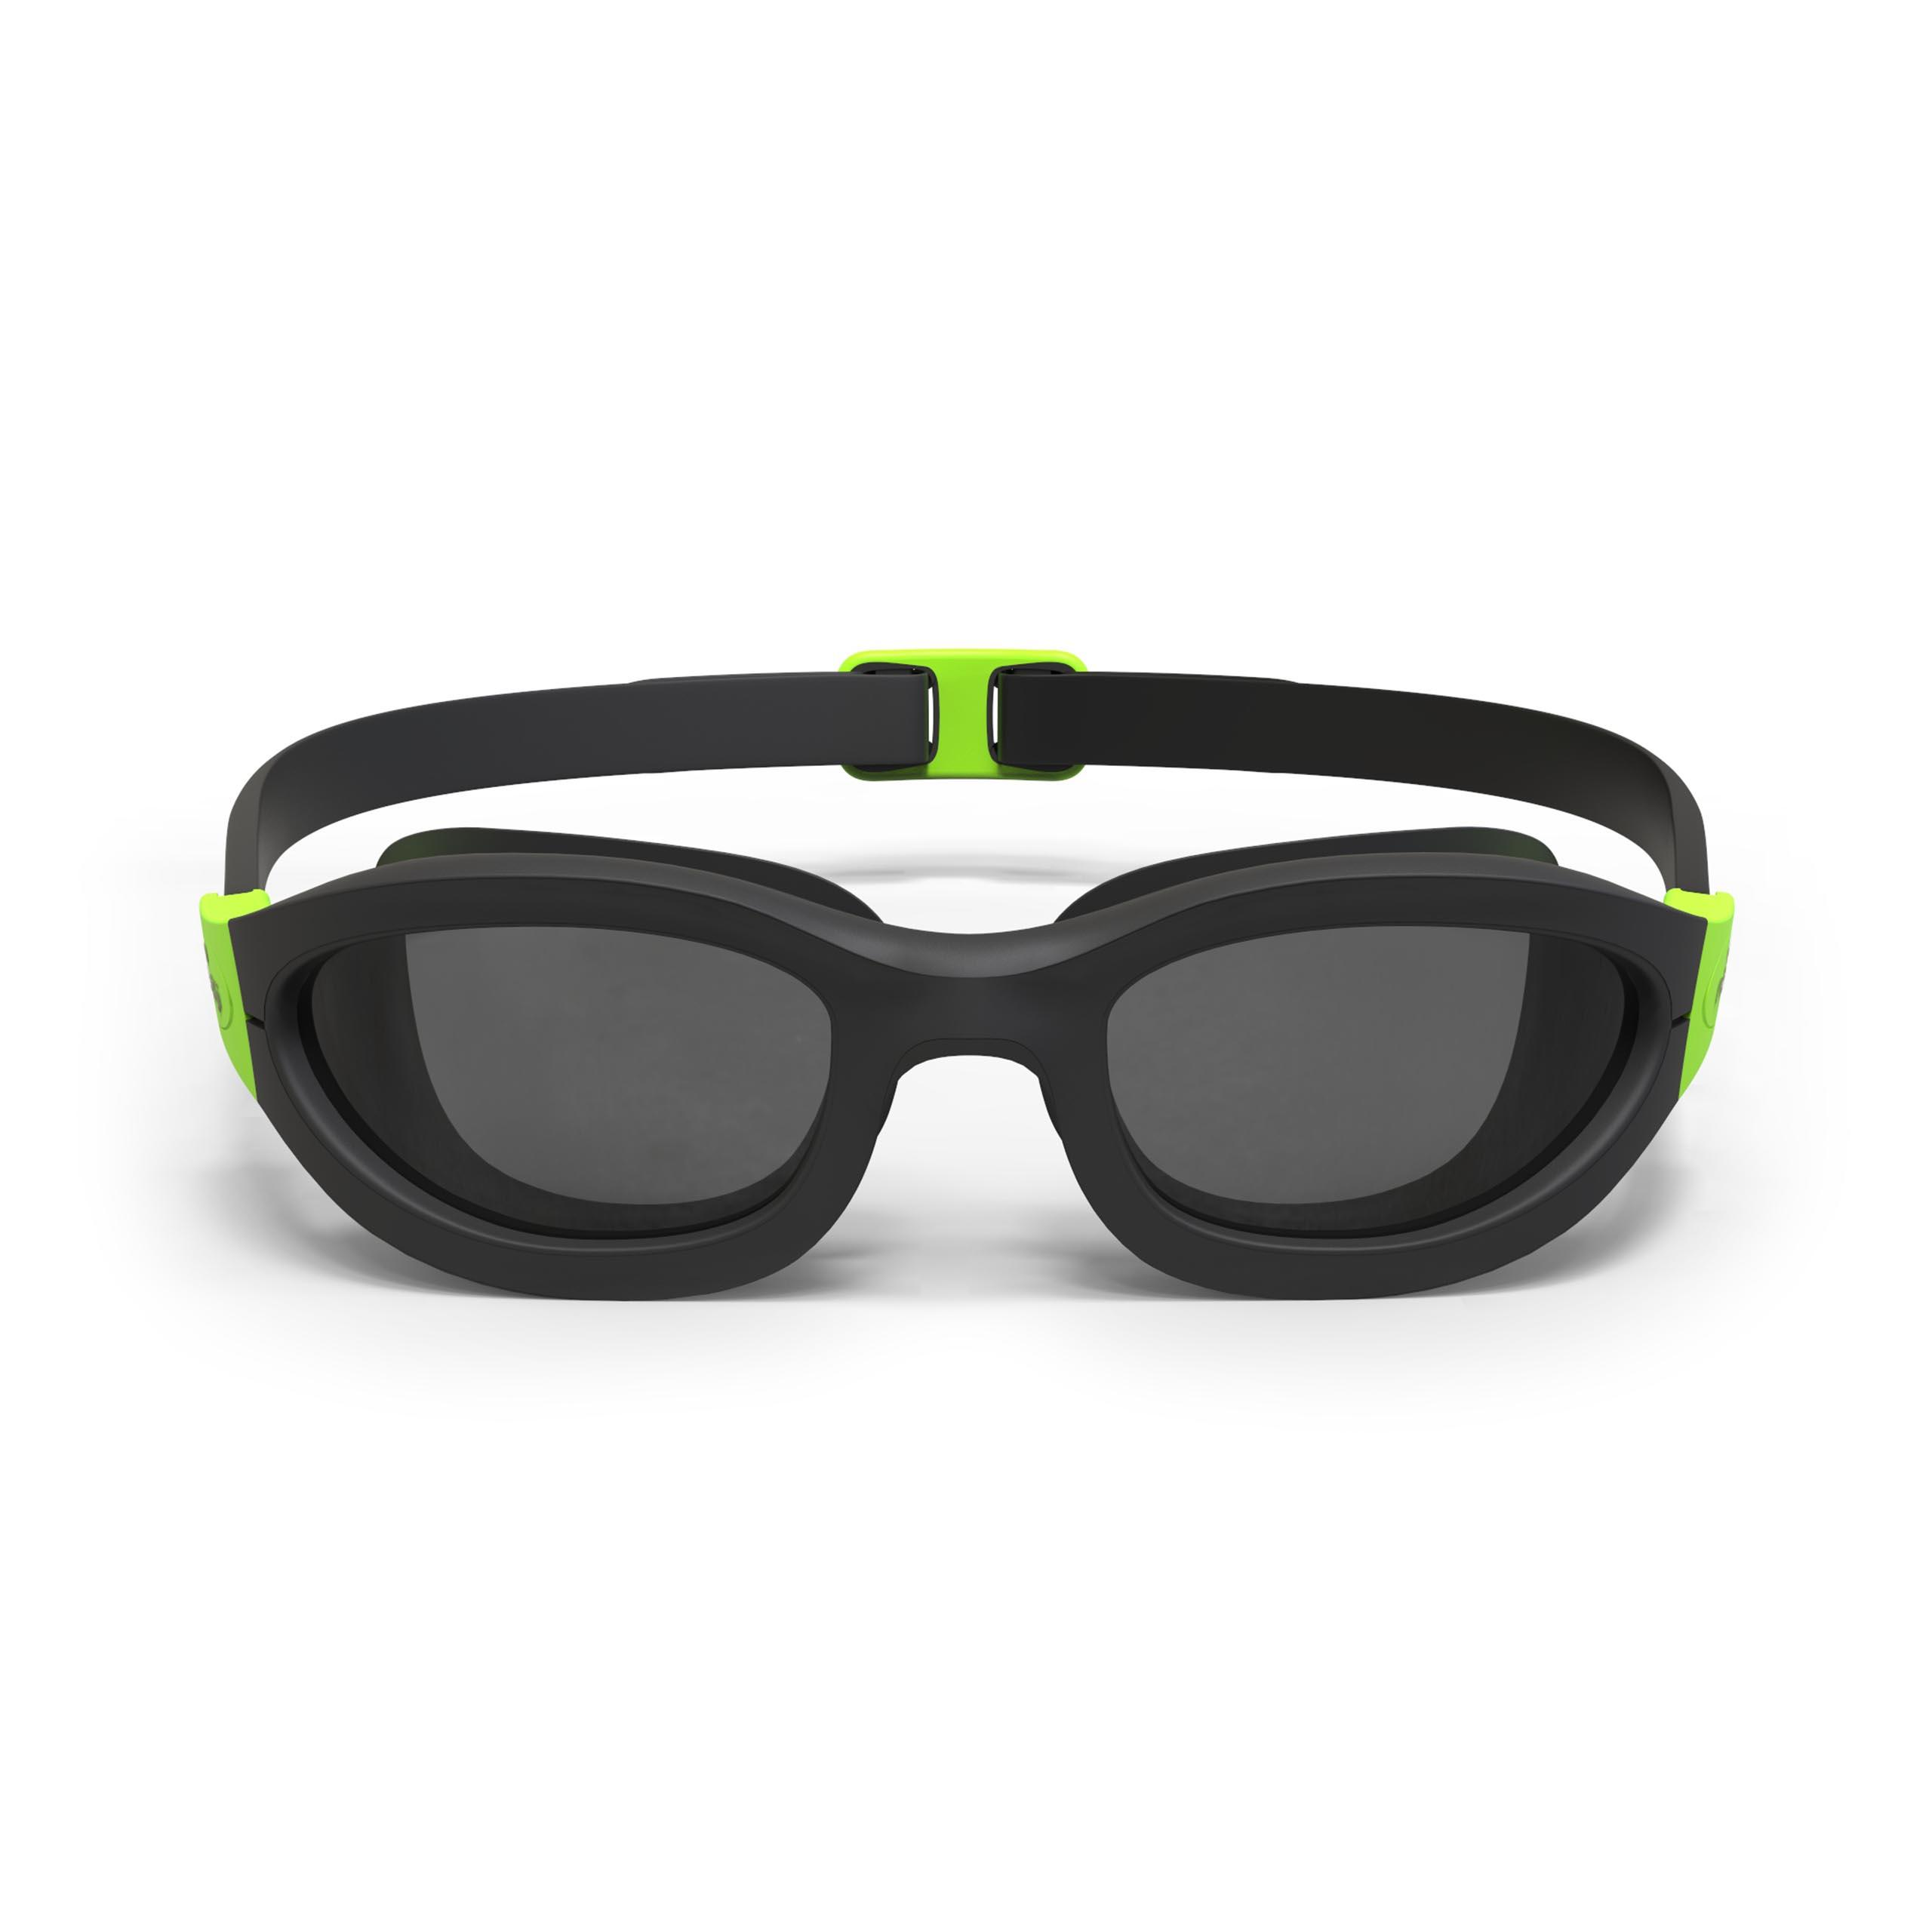 Swimming Goggles Easydow Large- Black